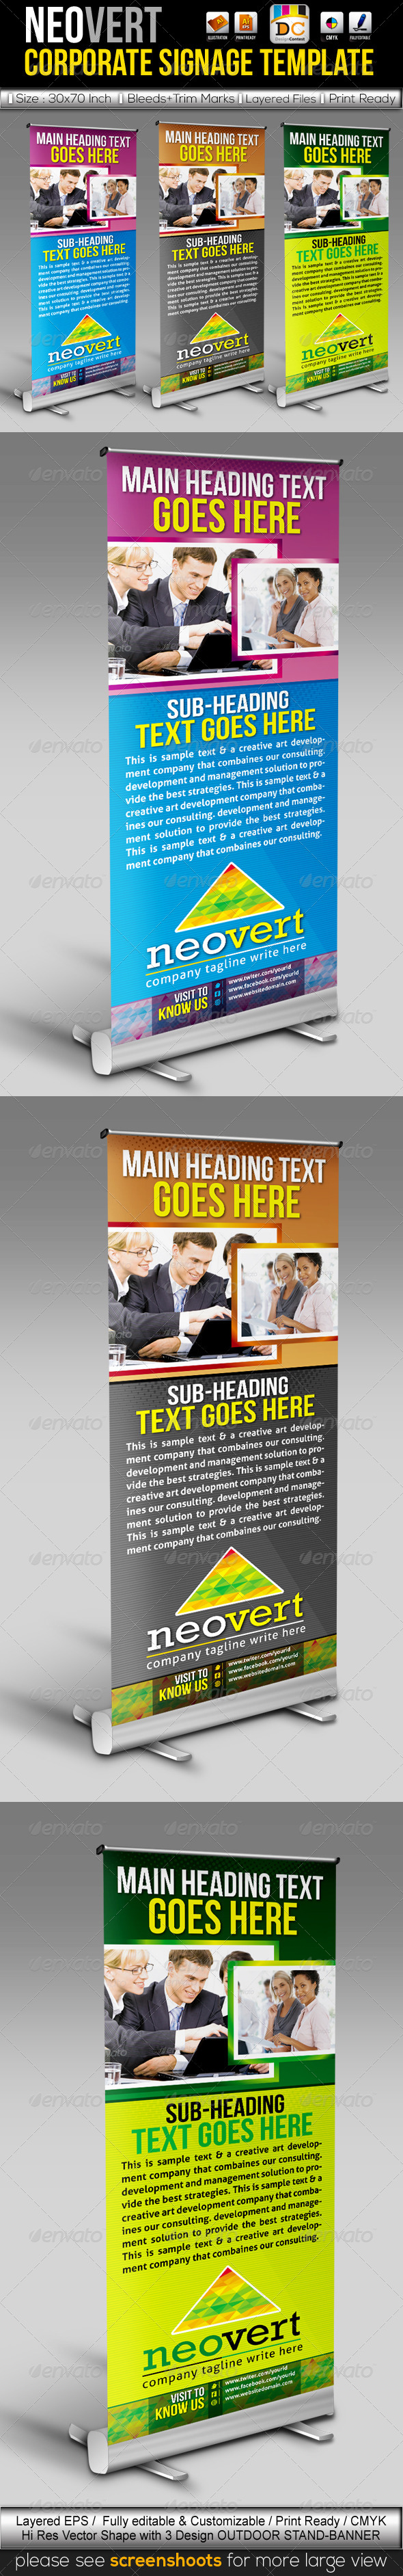 NeoVert Out-Door Stand Banner Sinage Templates  - Signage Print Templates